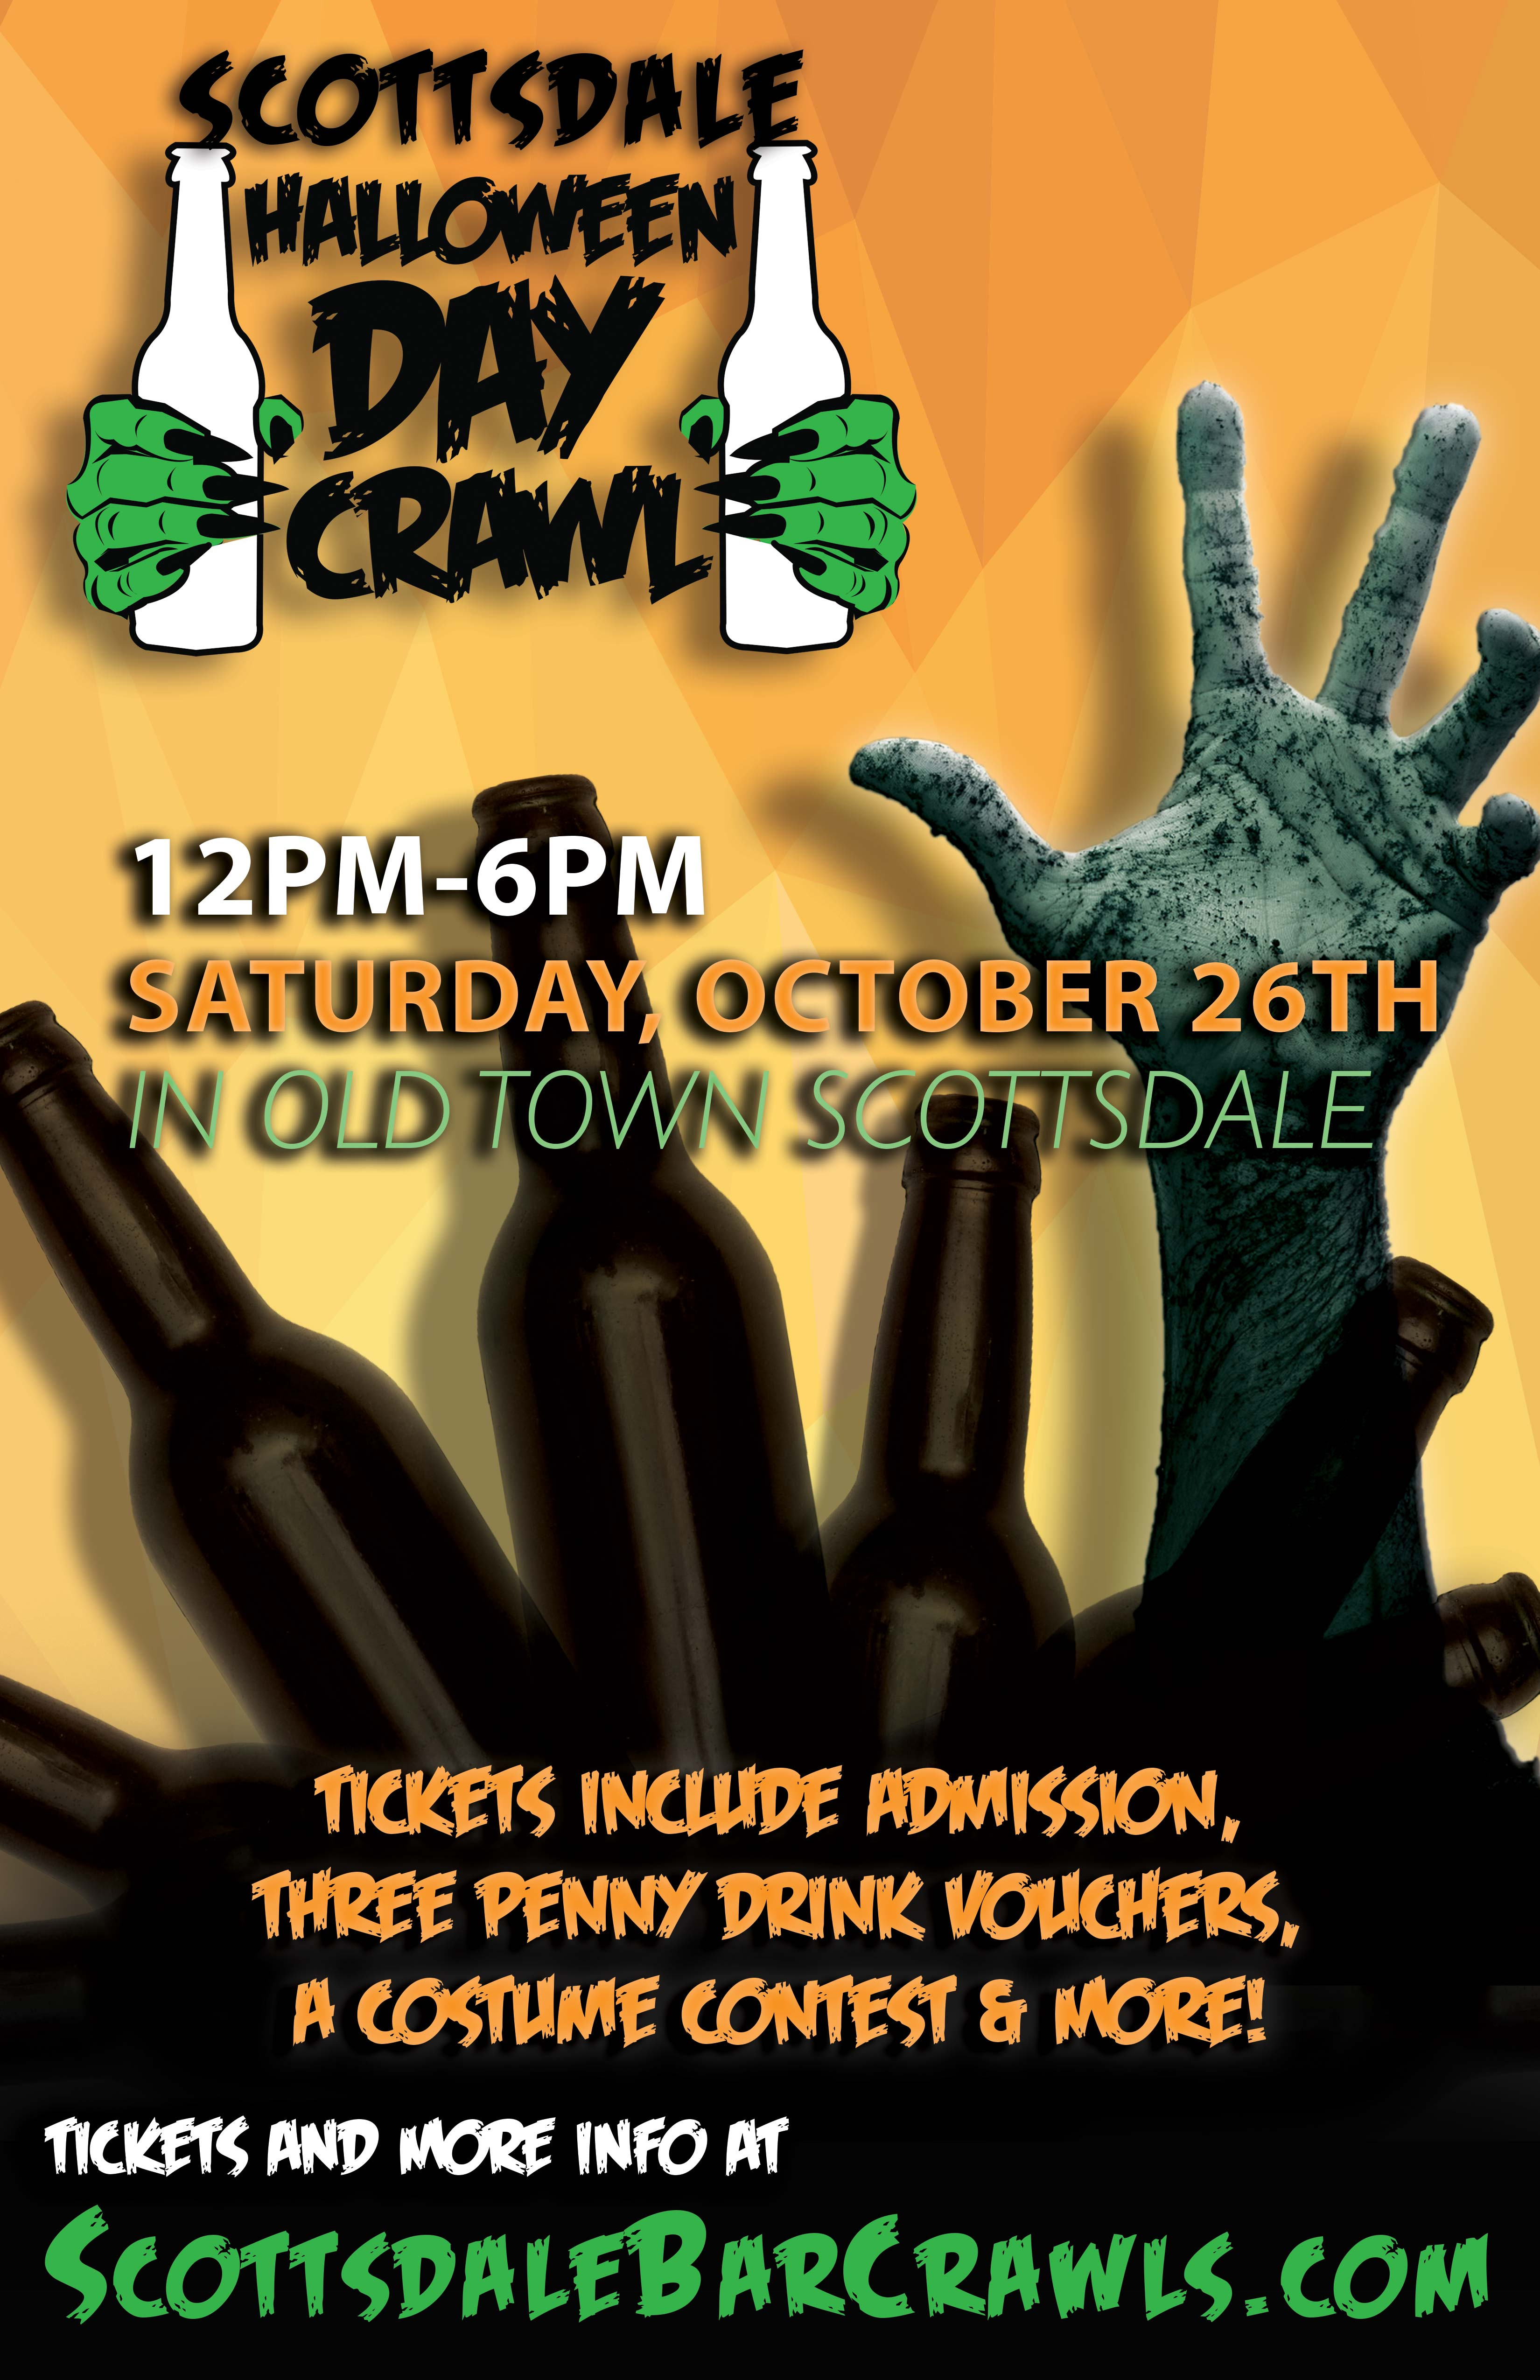 Scottsdale Halloween DAY Crawl - Bar Crawl Party - Tickets include Admission to All Bars, Three 1-penny ($.01) Drink Vouchers to Use on the Crawl, Costume Contests & More!